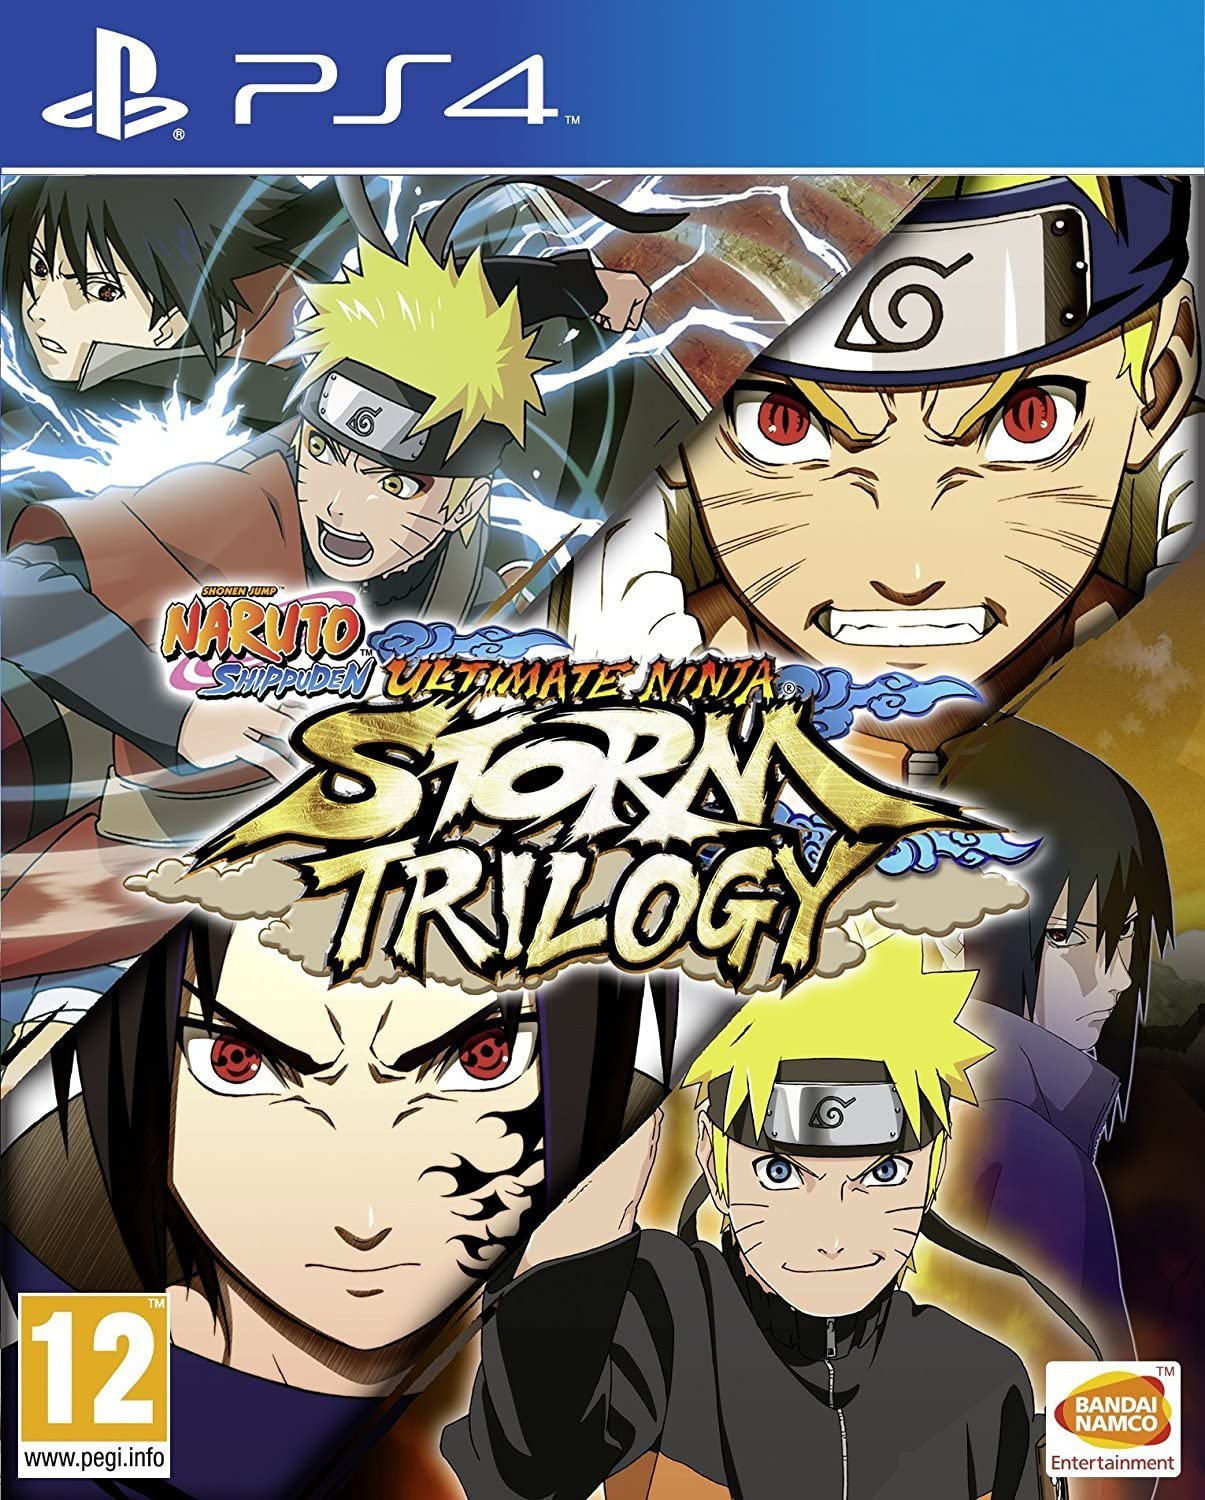 Amazon.com: Naruto Shippuden Ultimate Ninja Storm Trilogy ...